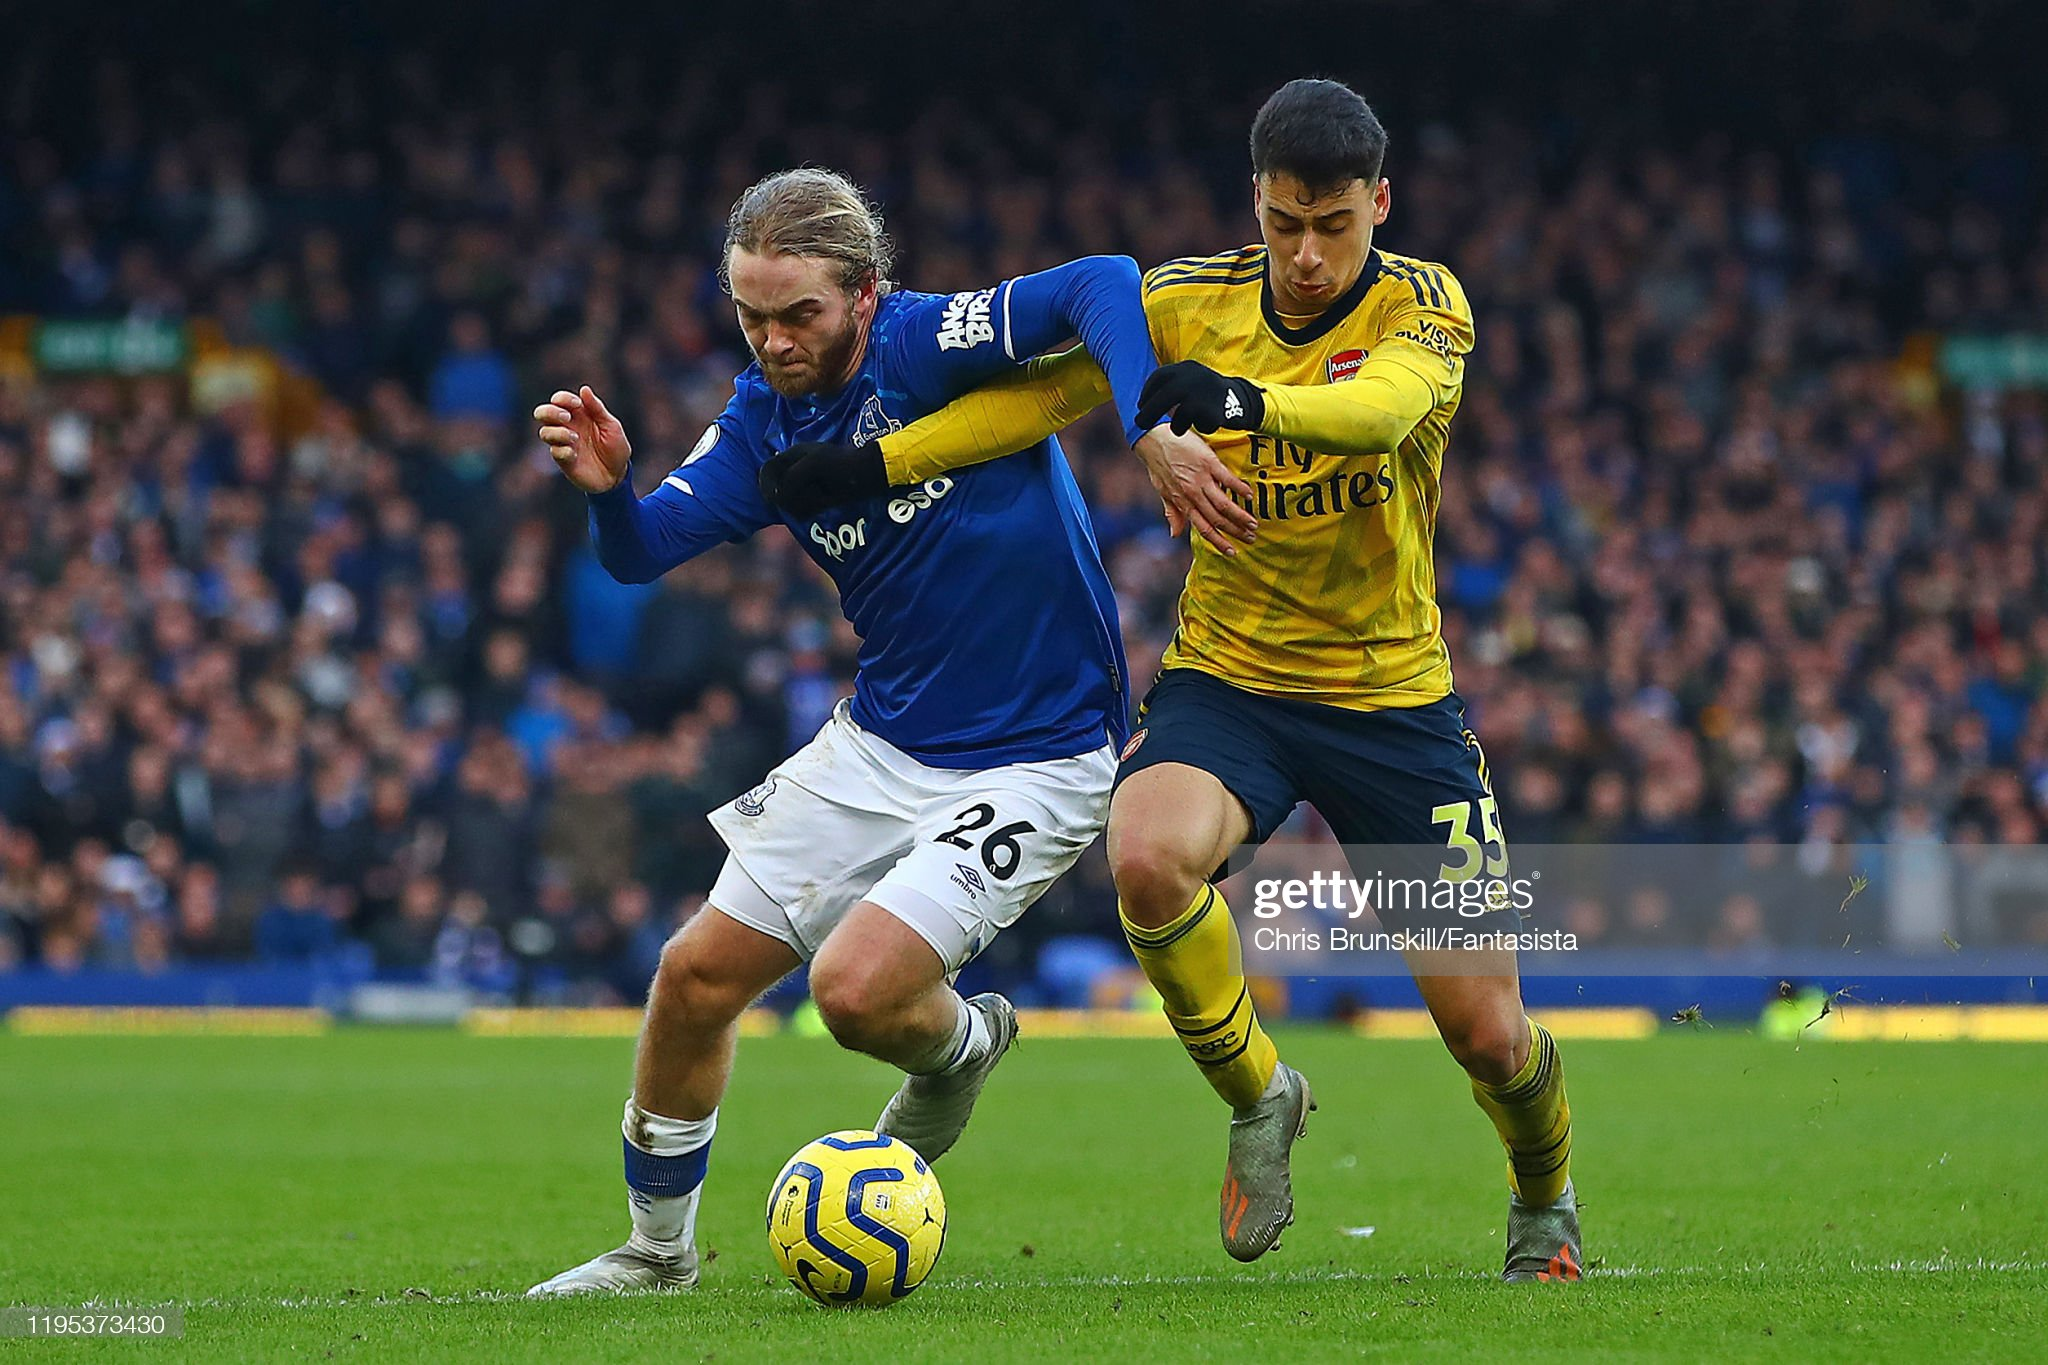 Arsenal v Everton preview, prediction and odds